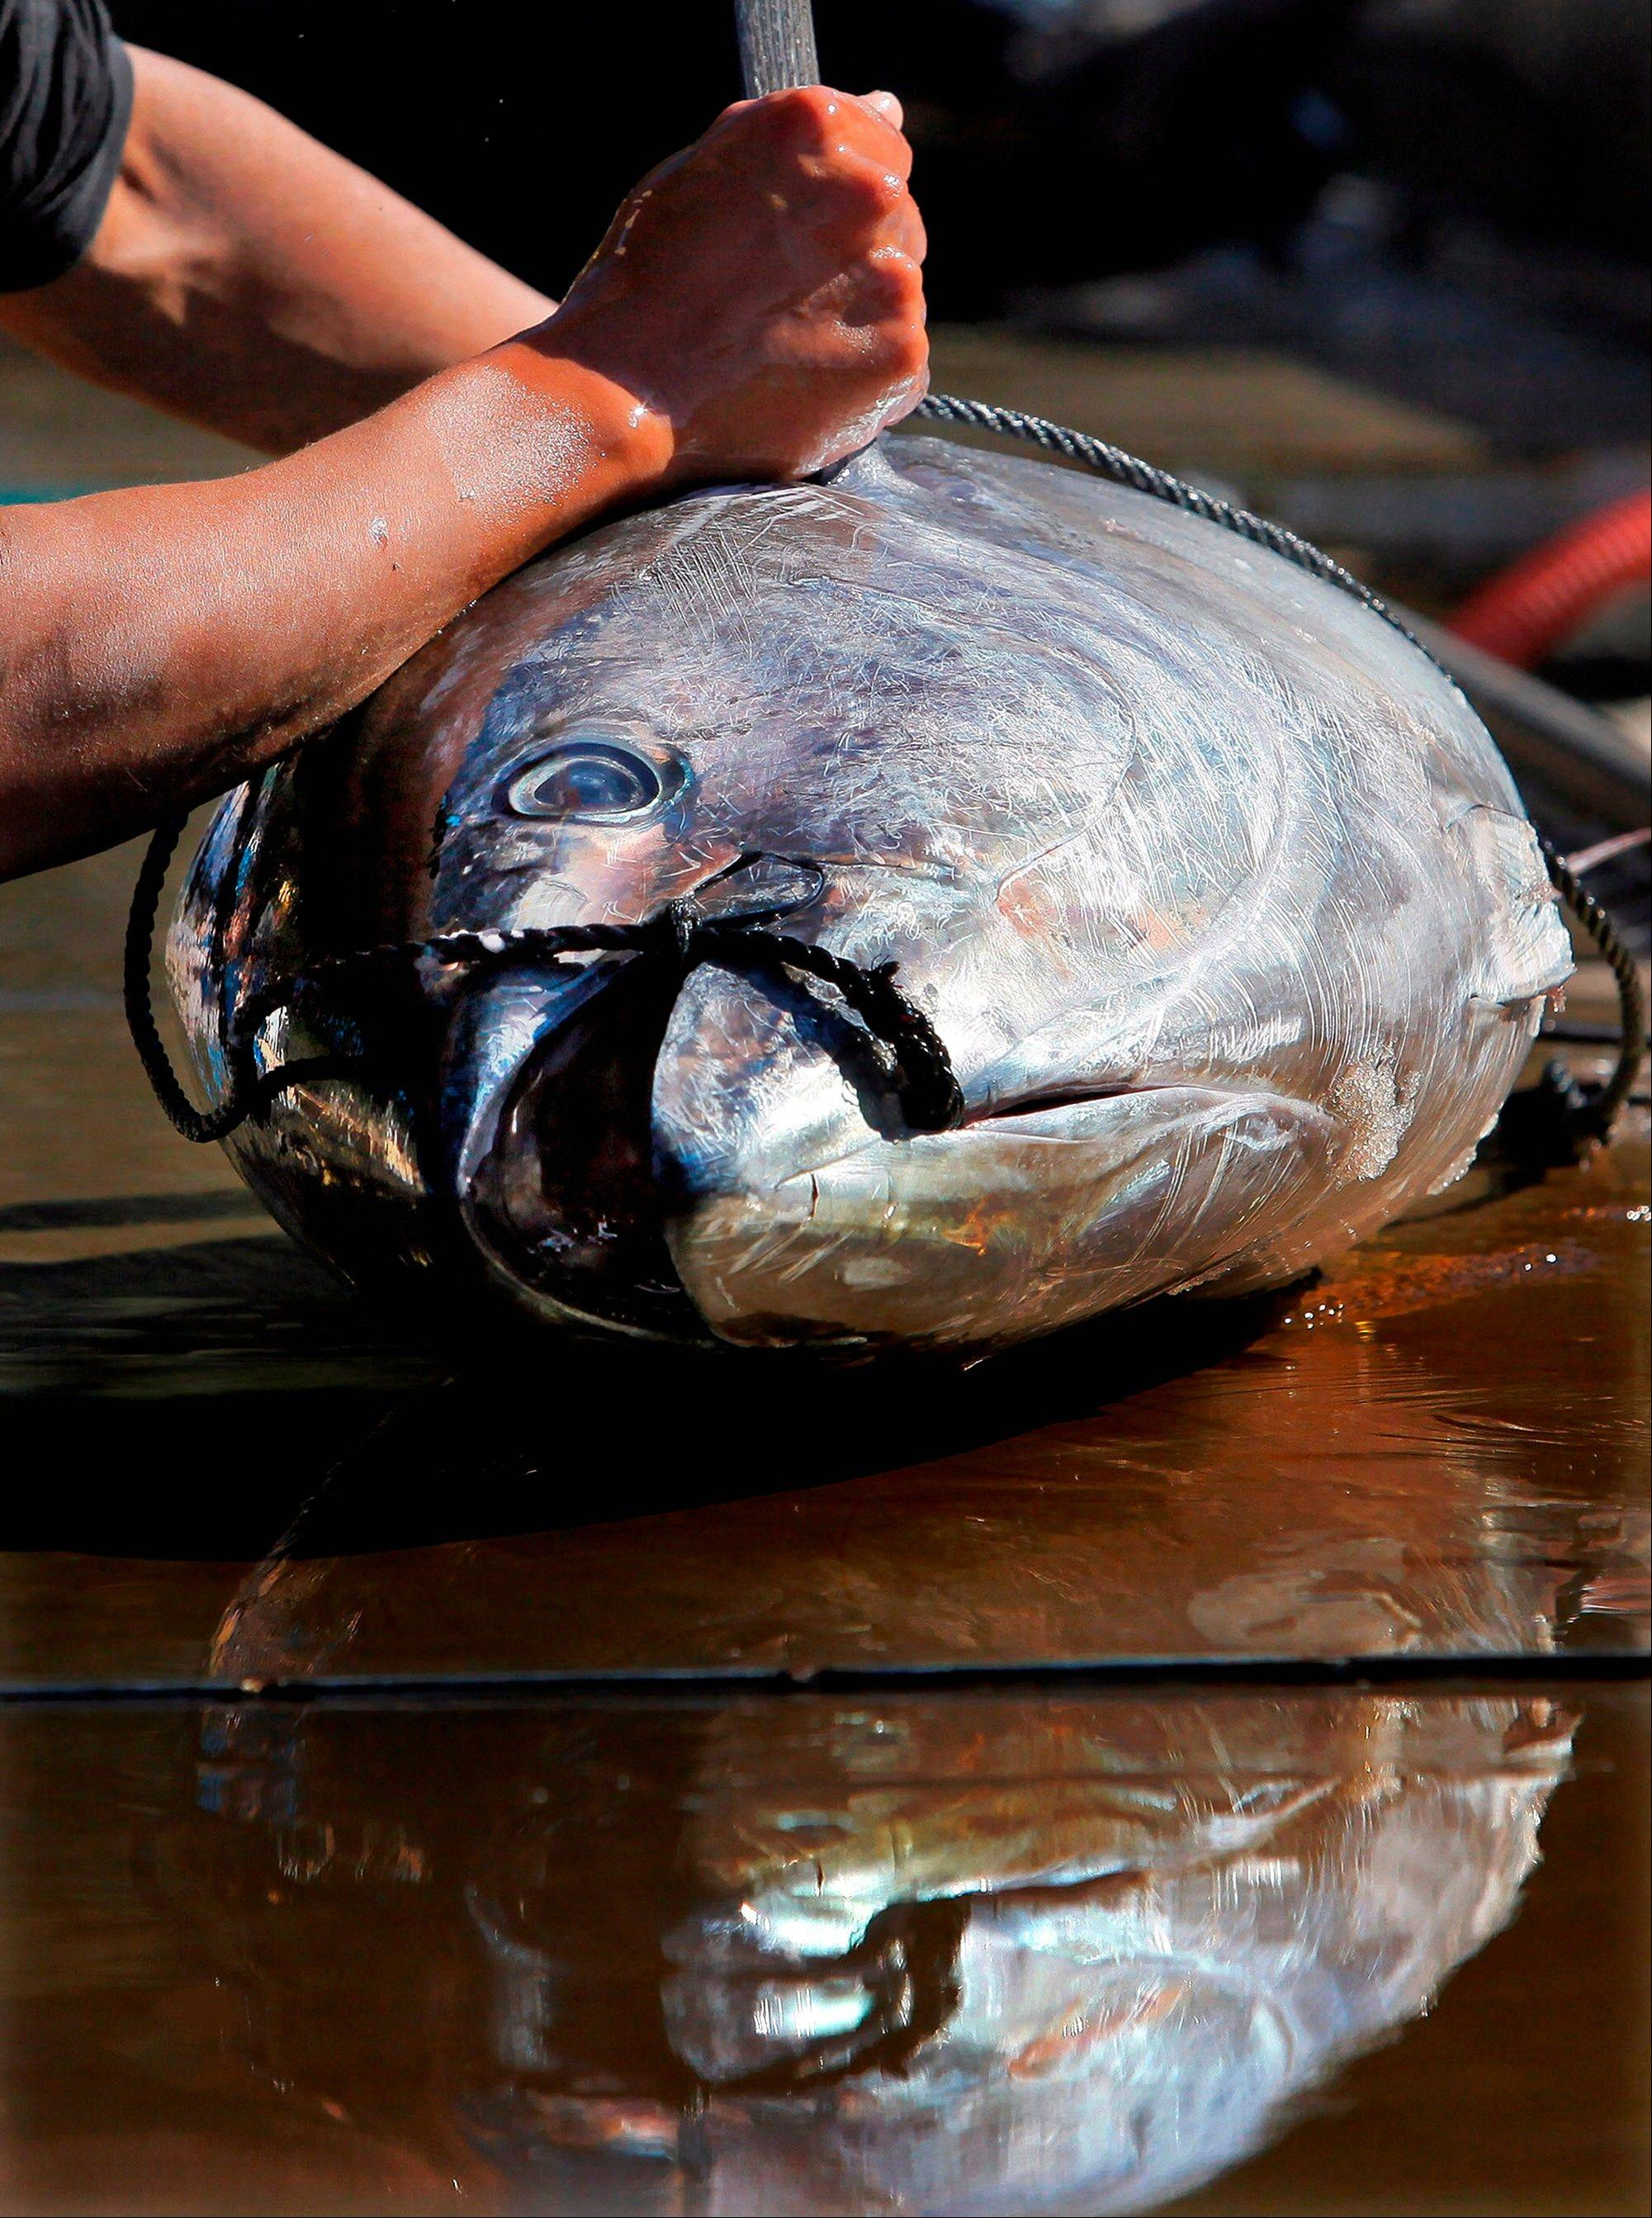 A worker measures a tuna at the Maruha Nichiro Holdings, Inc. tuna farm in Kumano, Japan.